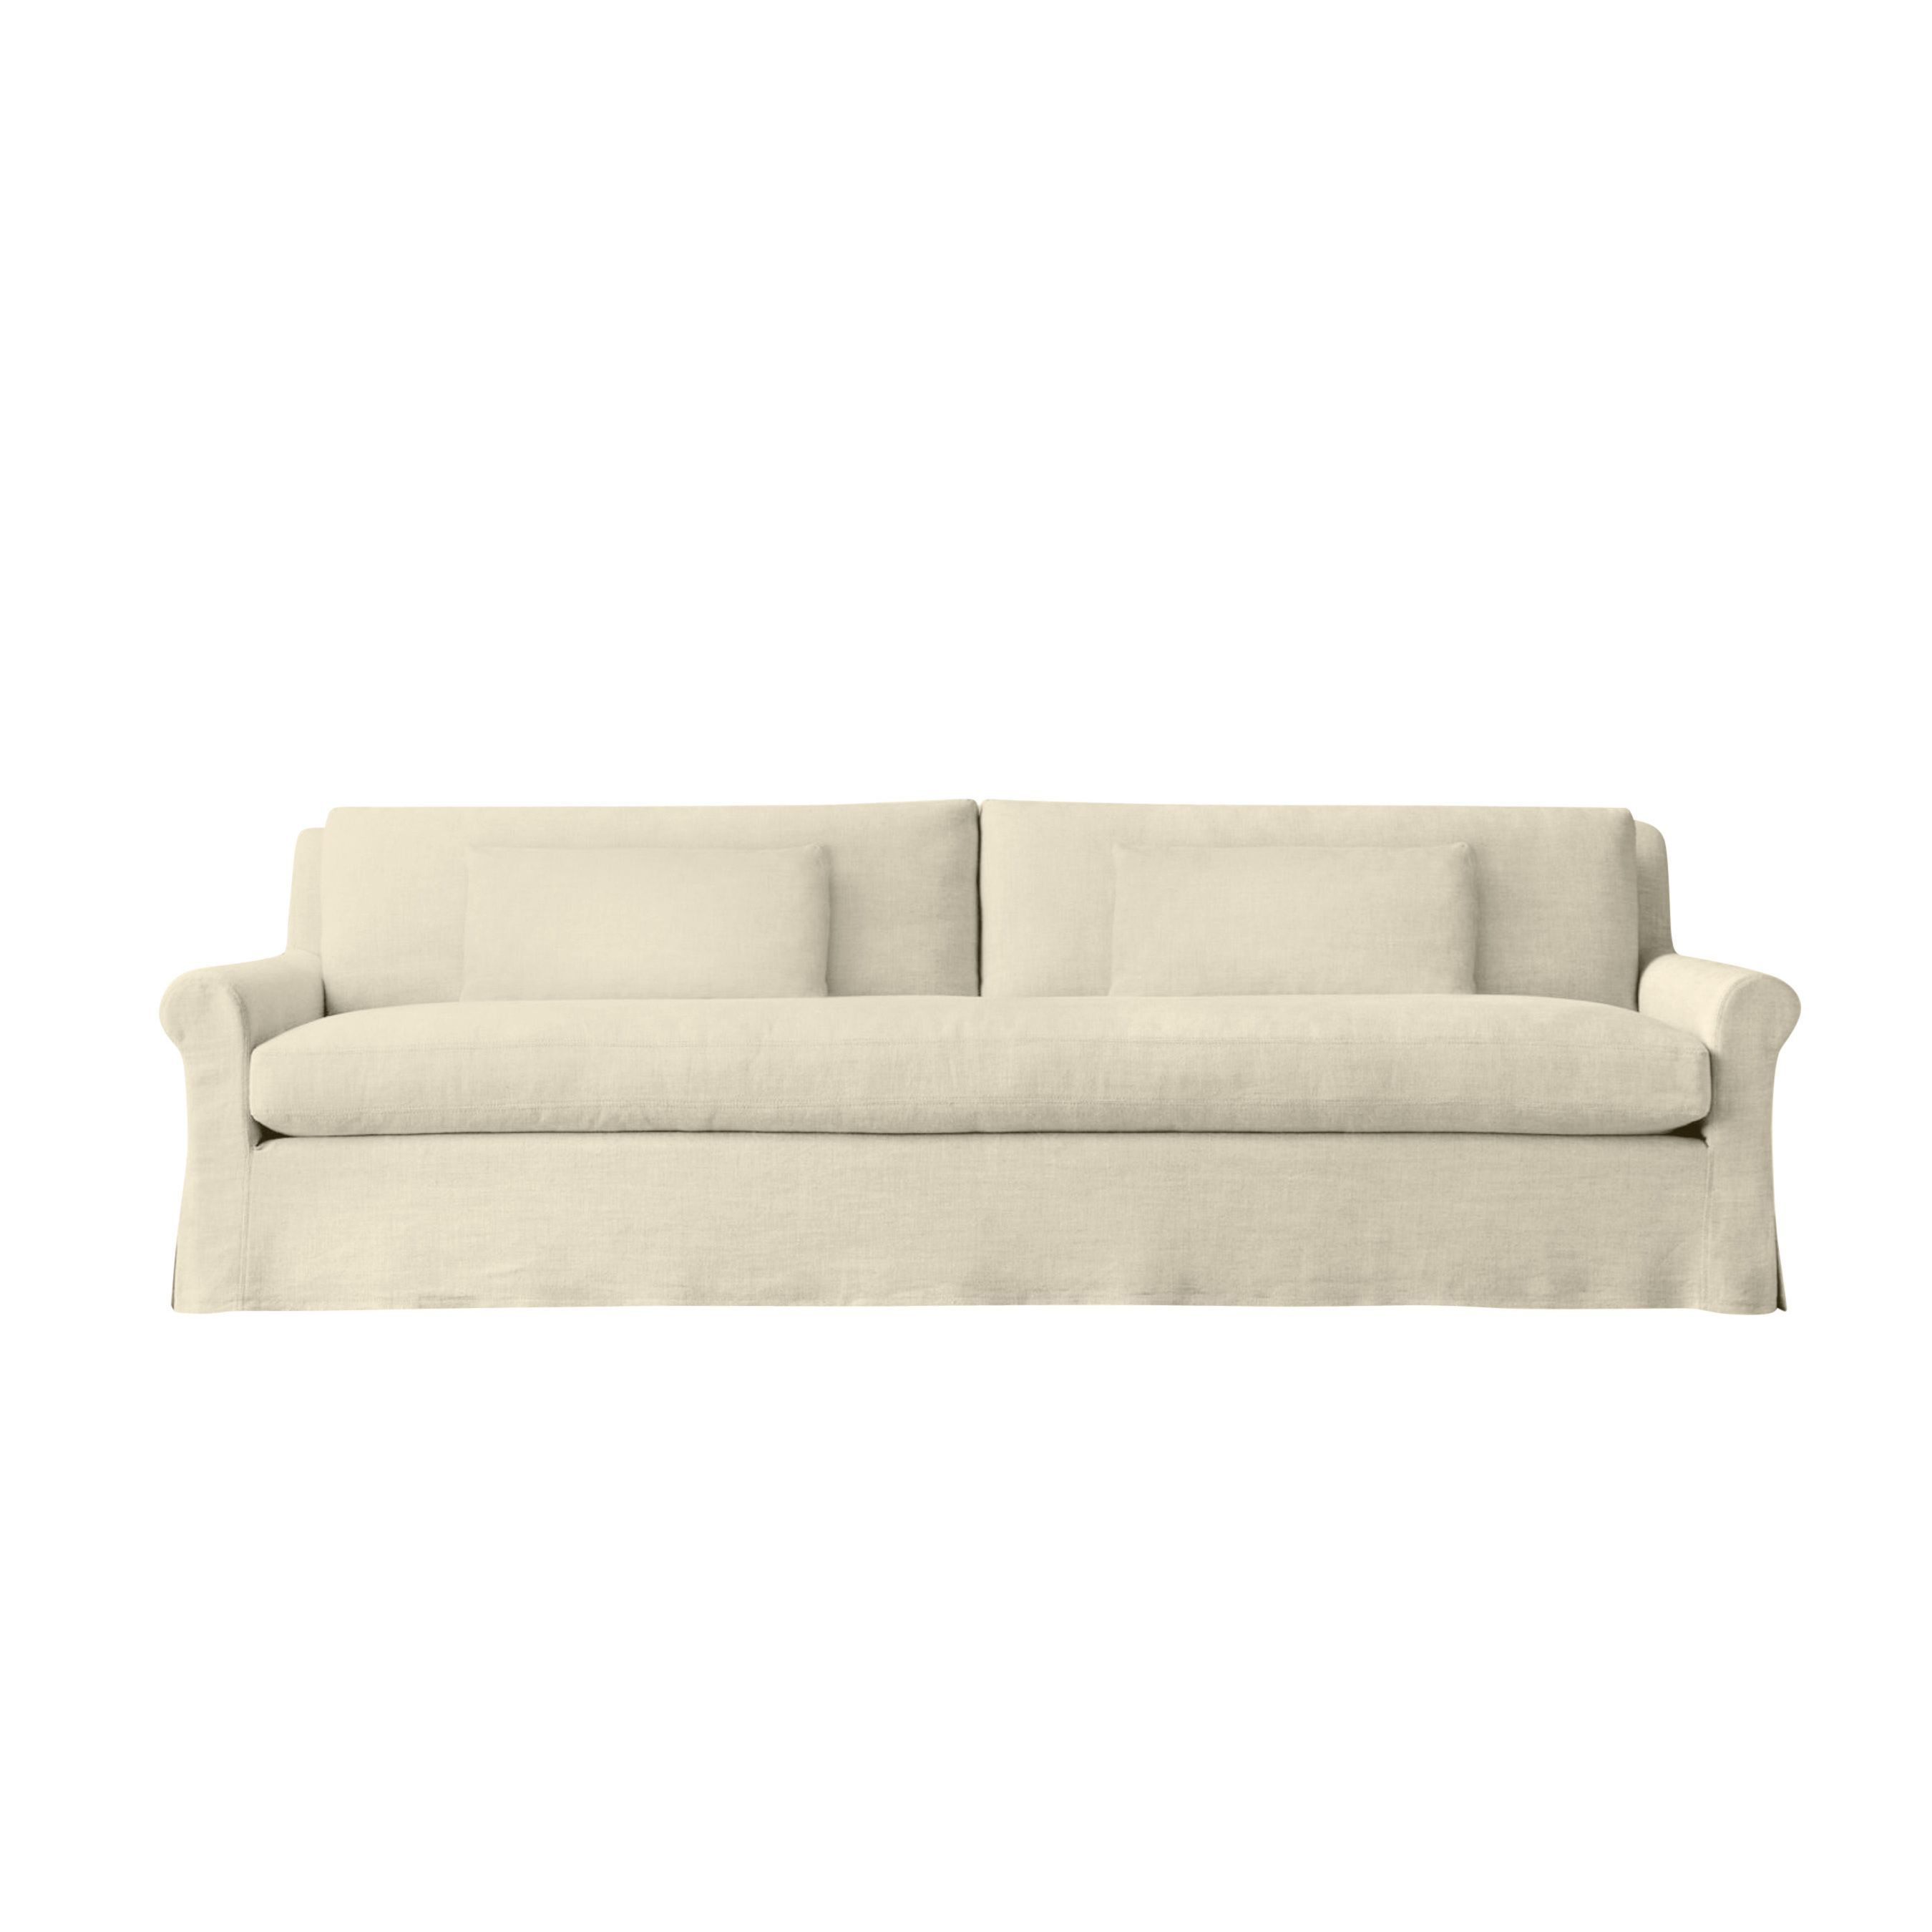 lovely tremendous couches sectional deep pillows comfy furniture wide living f sacs using sofa transformer lovesac room throw decorating extra oversized ideas for couch seat large